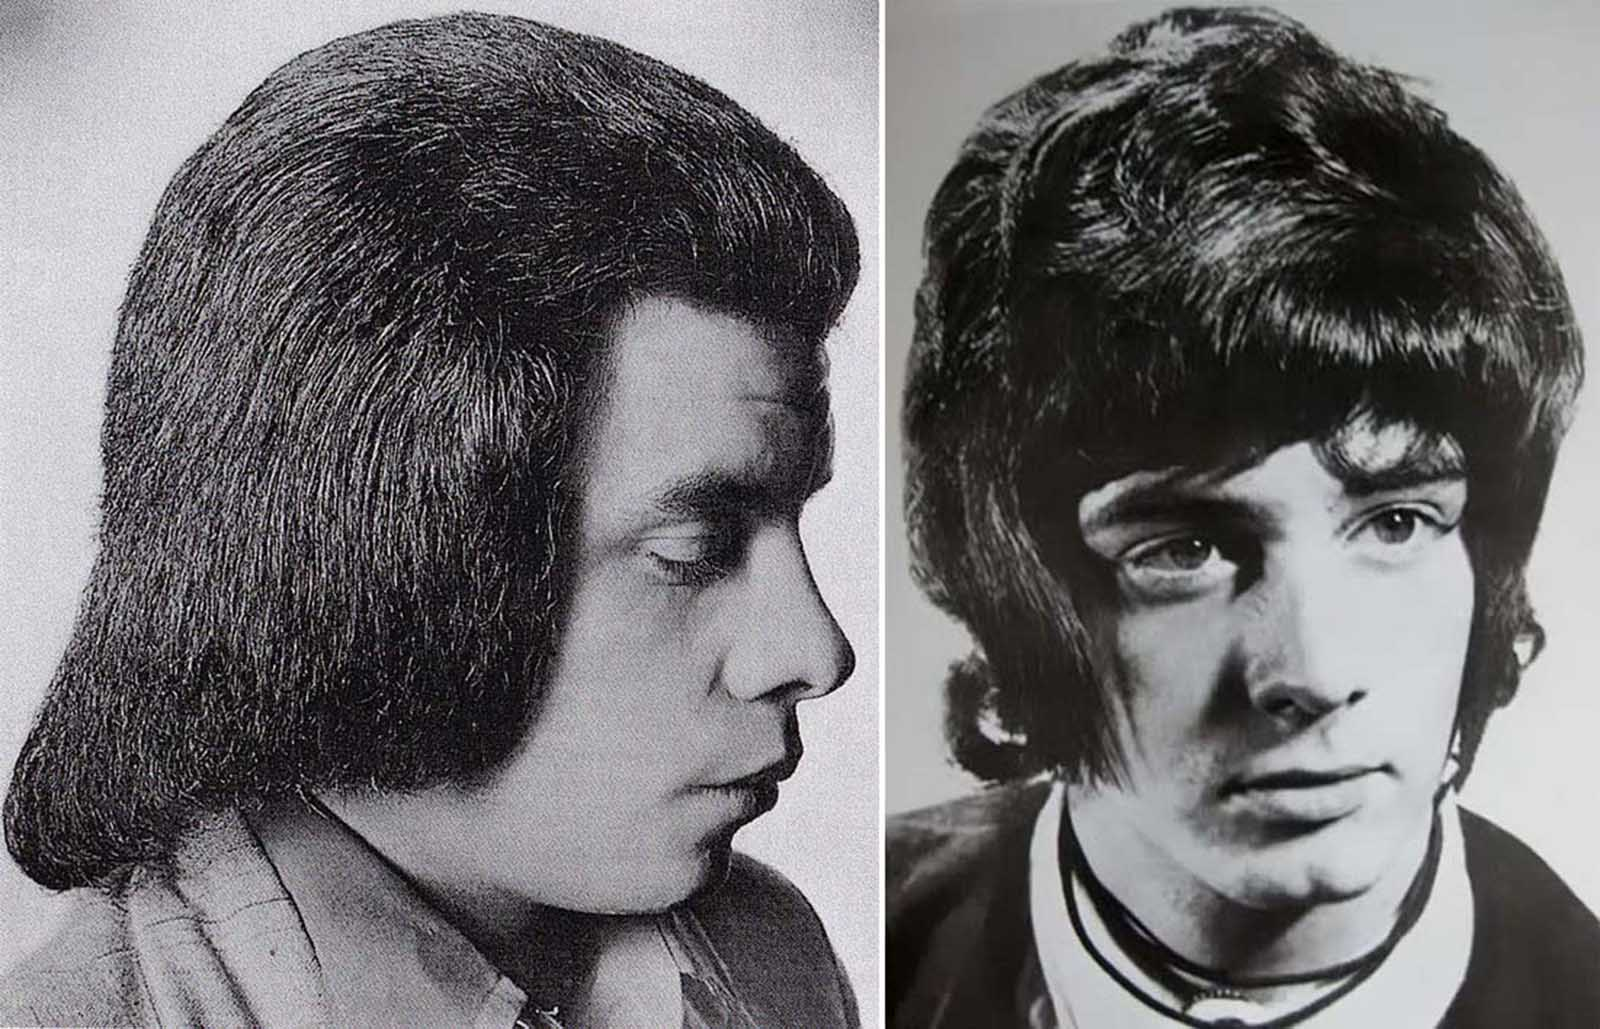 romantic men's hairstyle from the 1960s–1970s